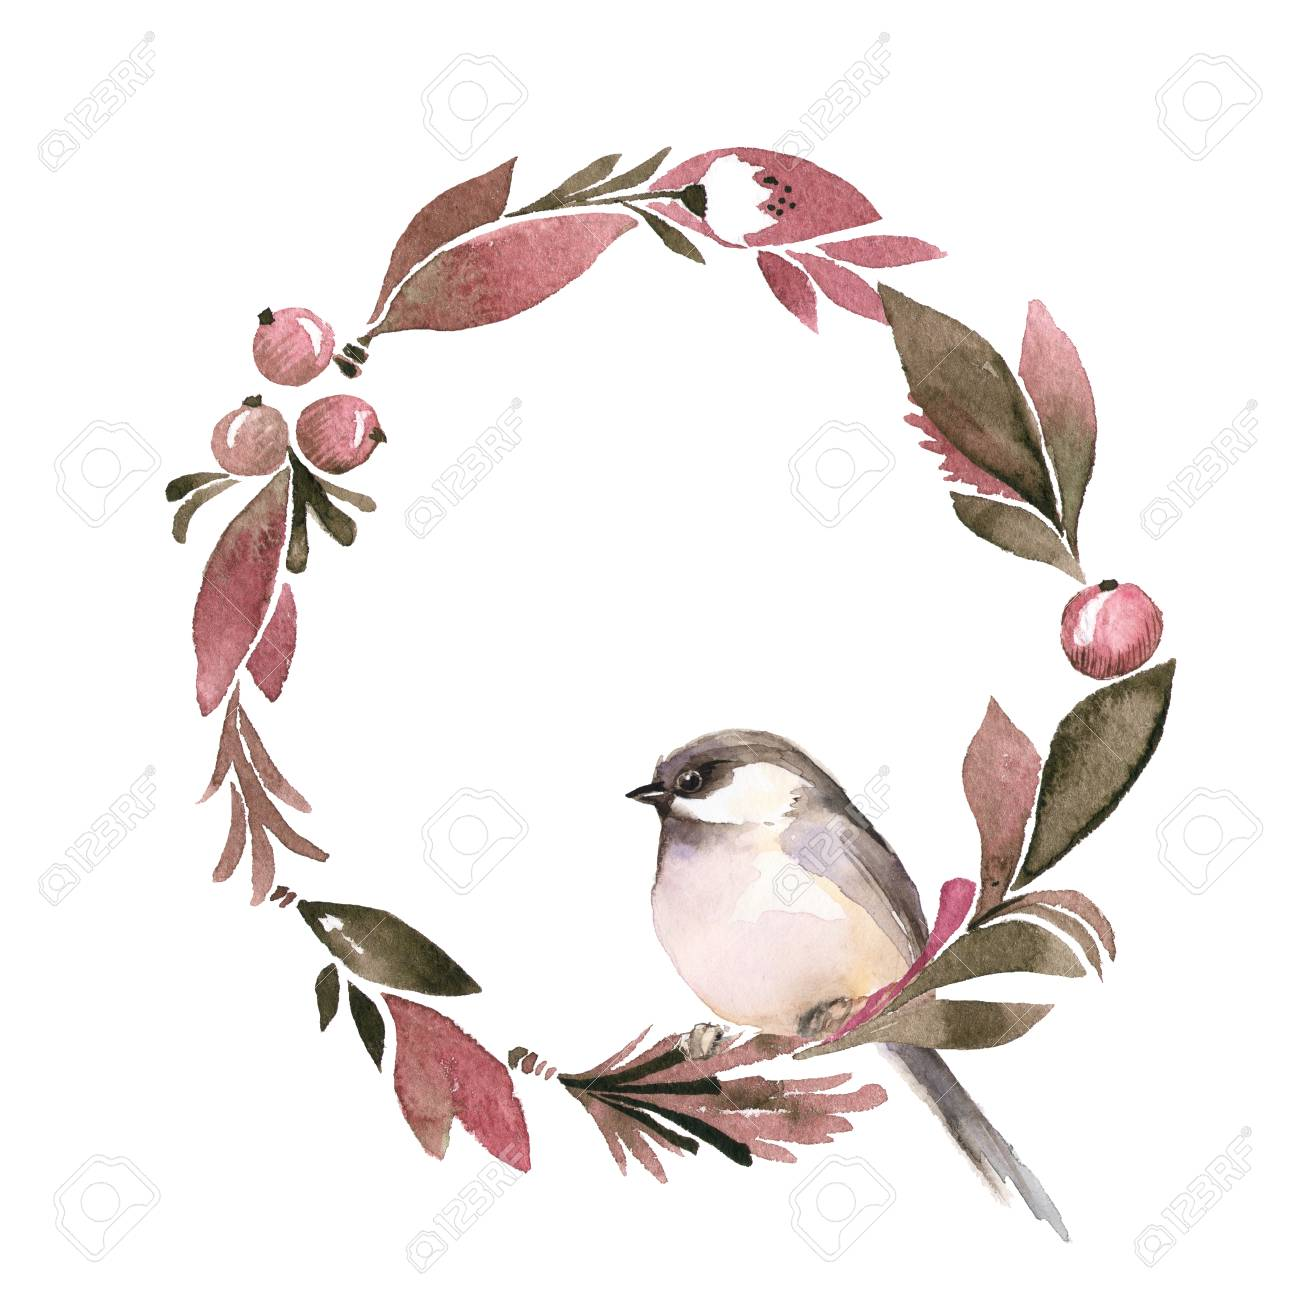 Watercolor Floral Wreath. Round Frame With Bird Stock Photo, Picture ...